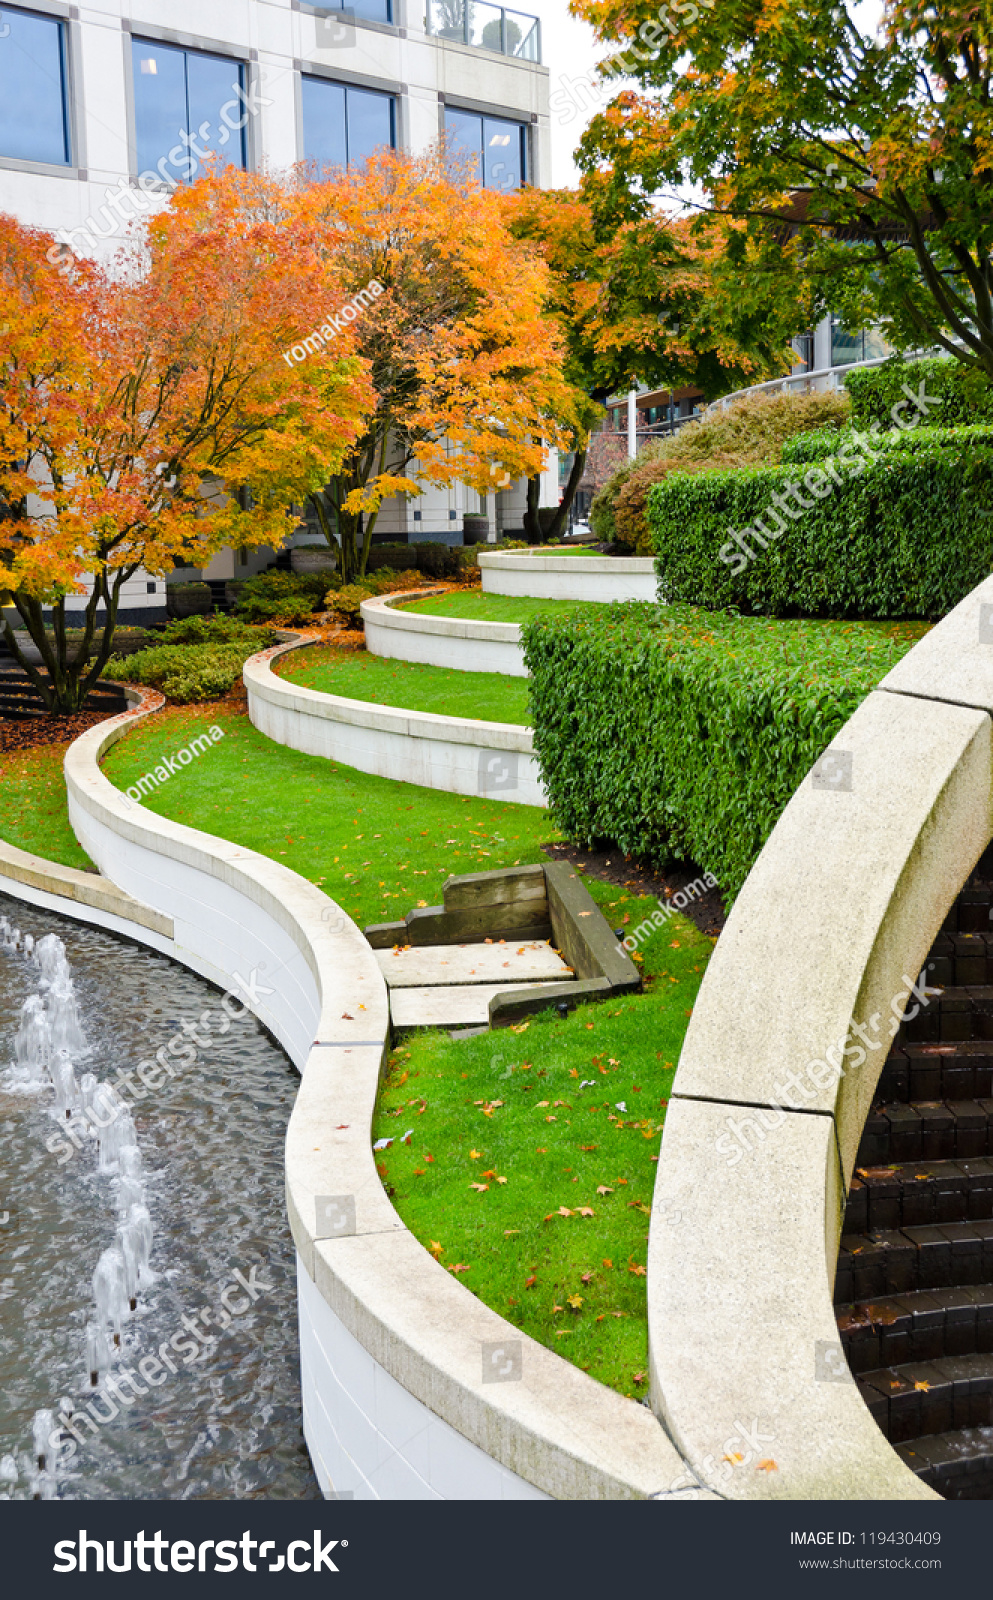 Leveled Terraces With Grass And Fountains In A City Plaza ...